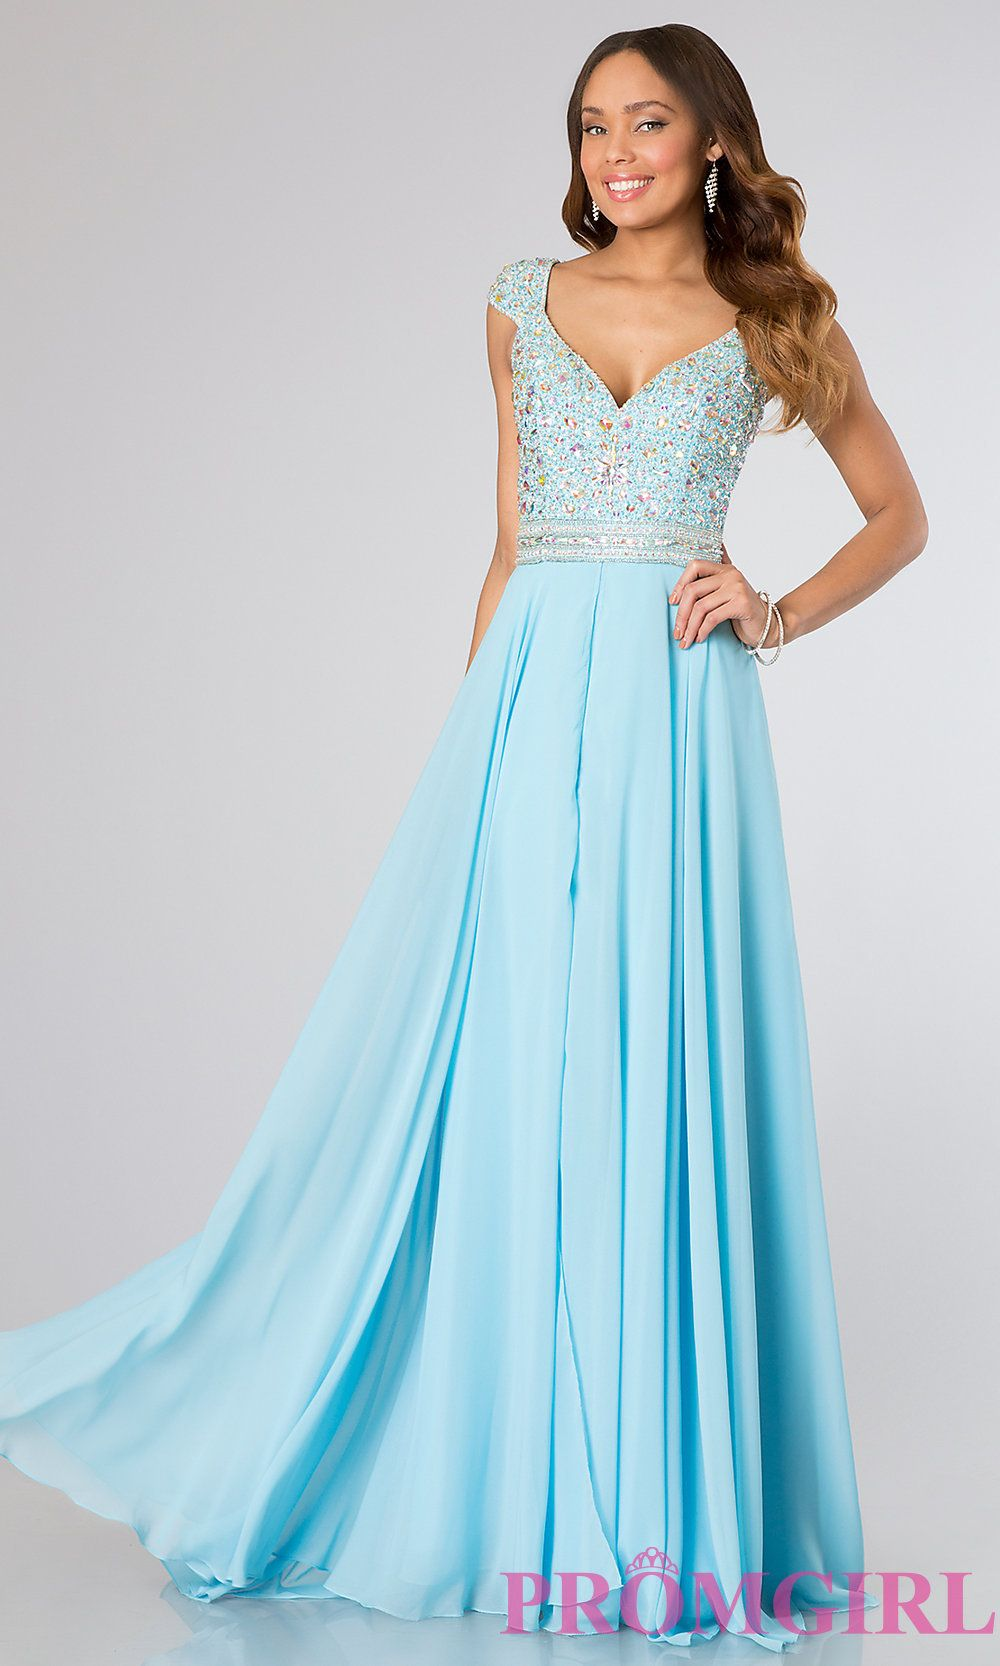 Long V-Neck Gown with Cap Sleeves by Panoply | Shops, Prom dresses ...